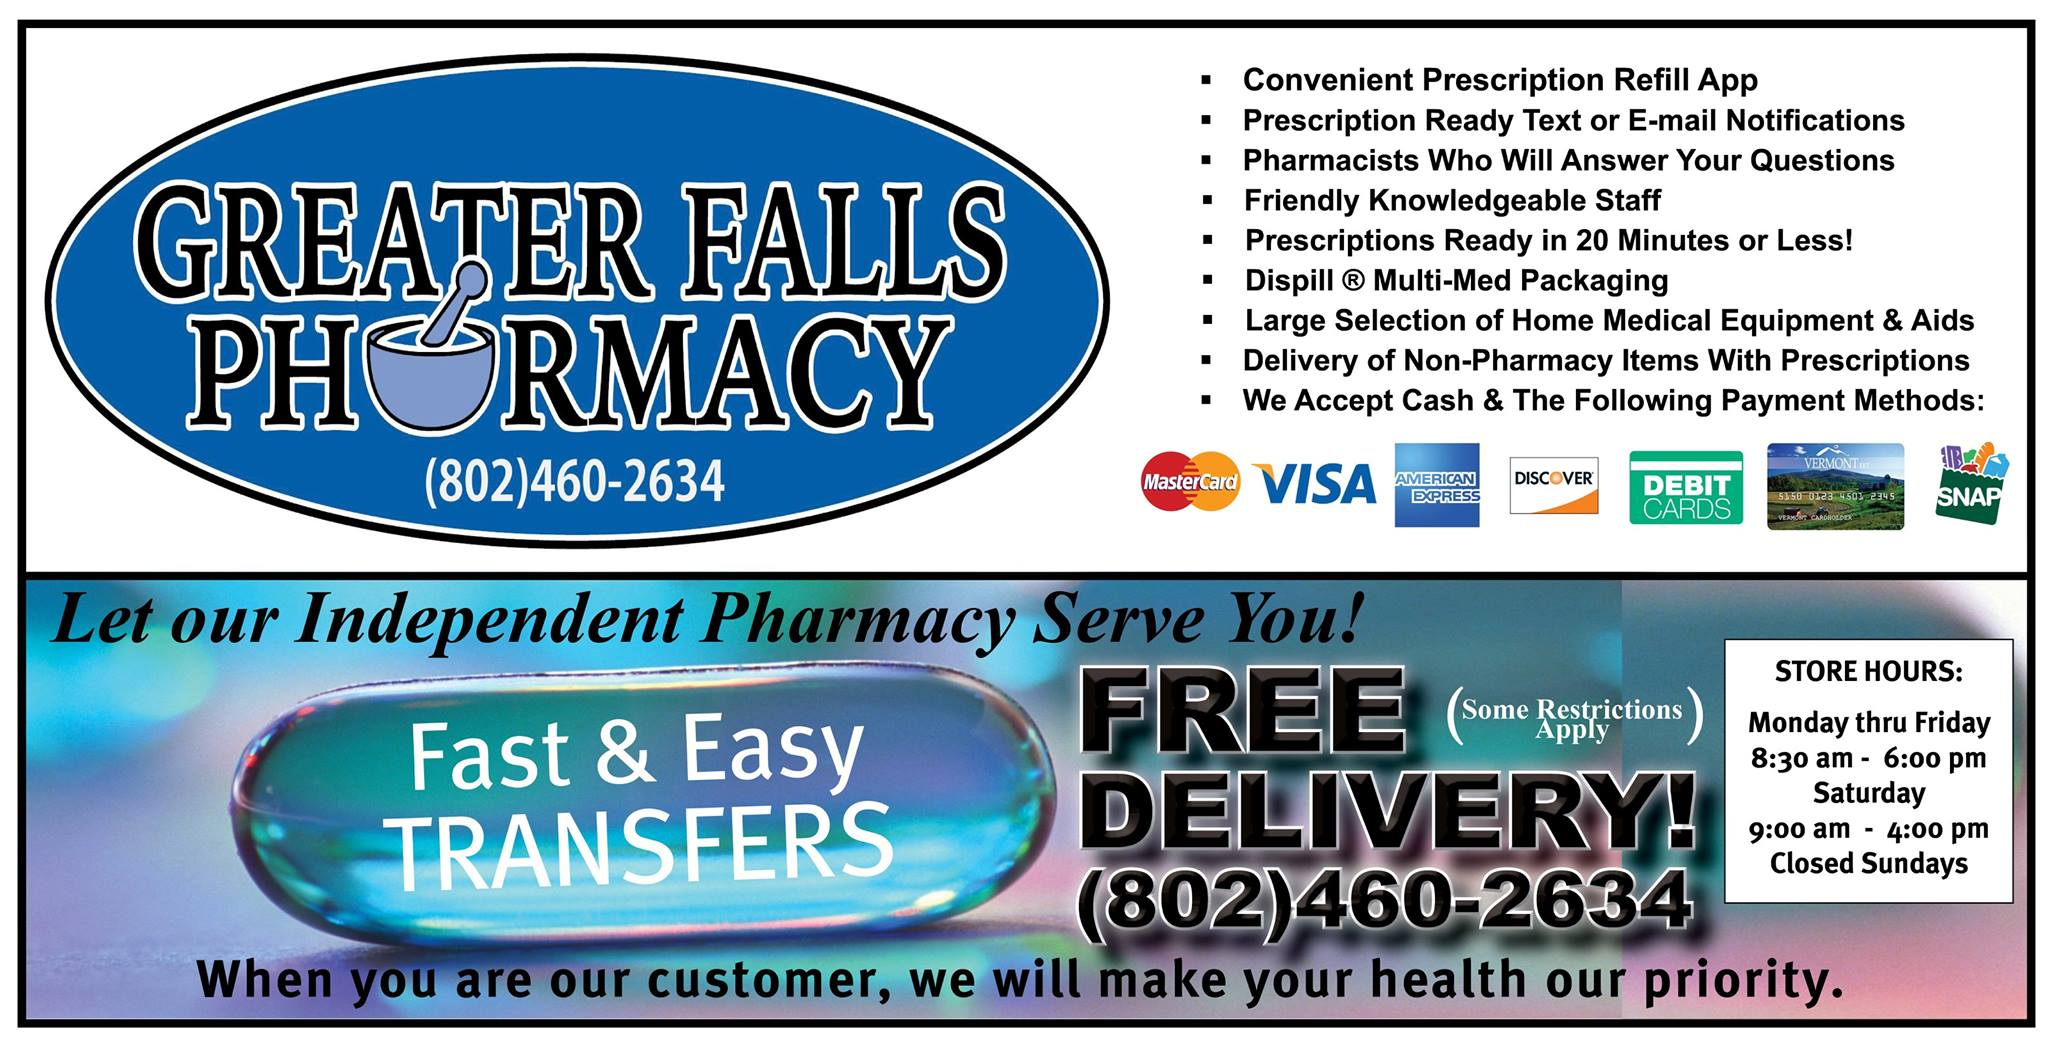 Greater Falls Pharmacy